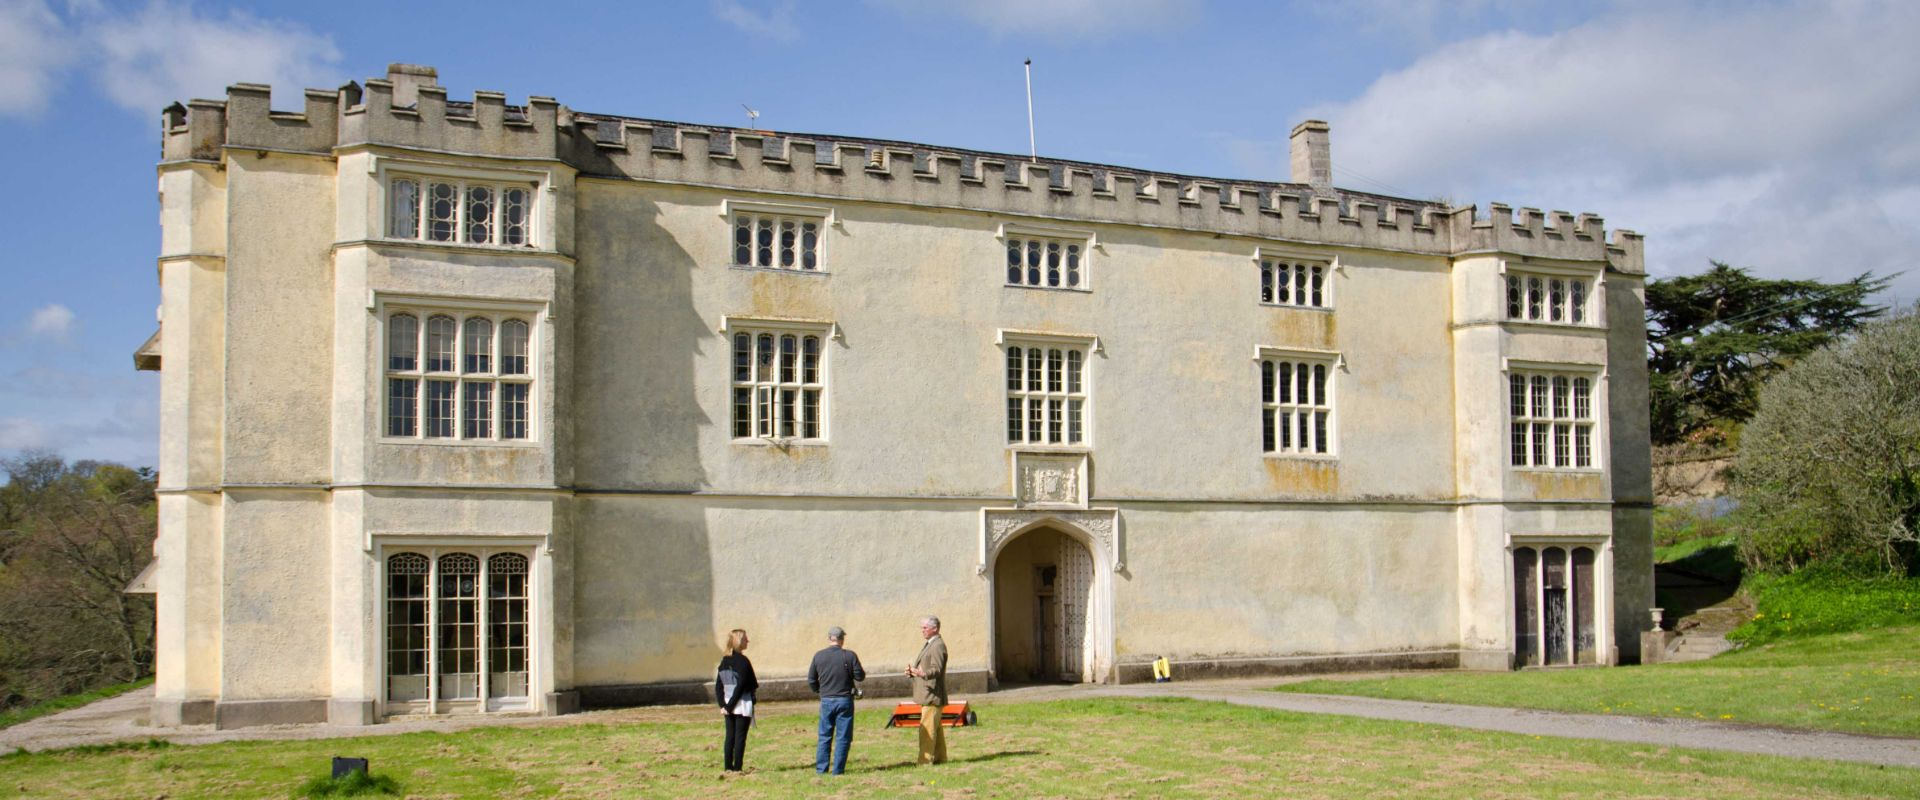 Guests on a guided tour of Great Fulford